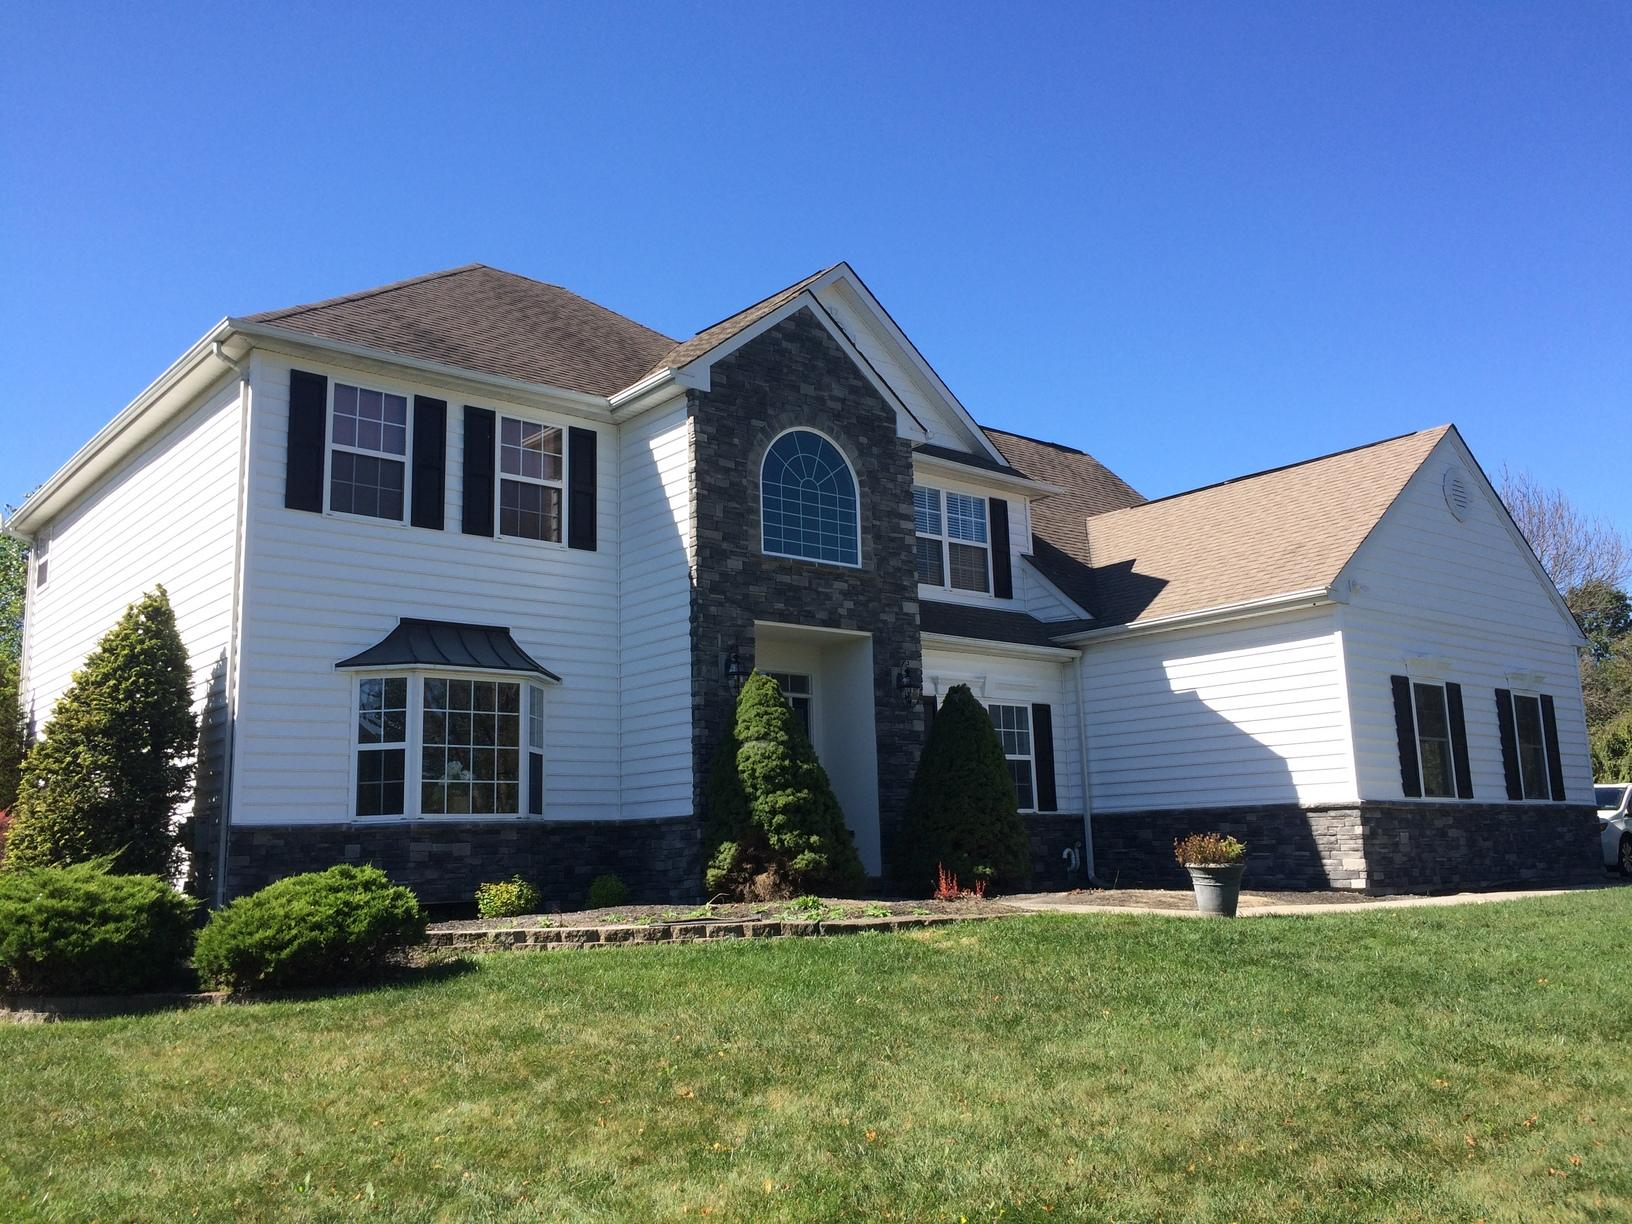 Final Photo of Stone and Vinyl Siding Install in North Wales, PA